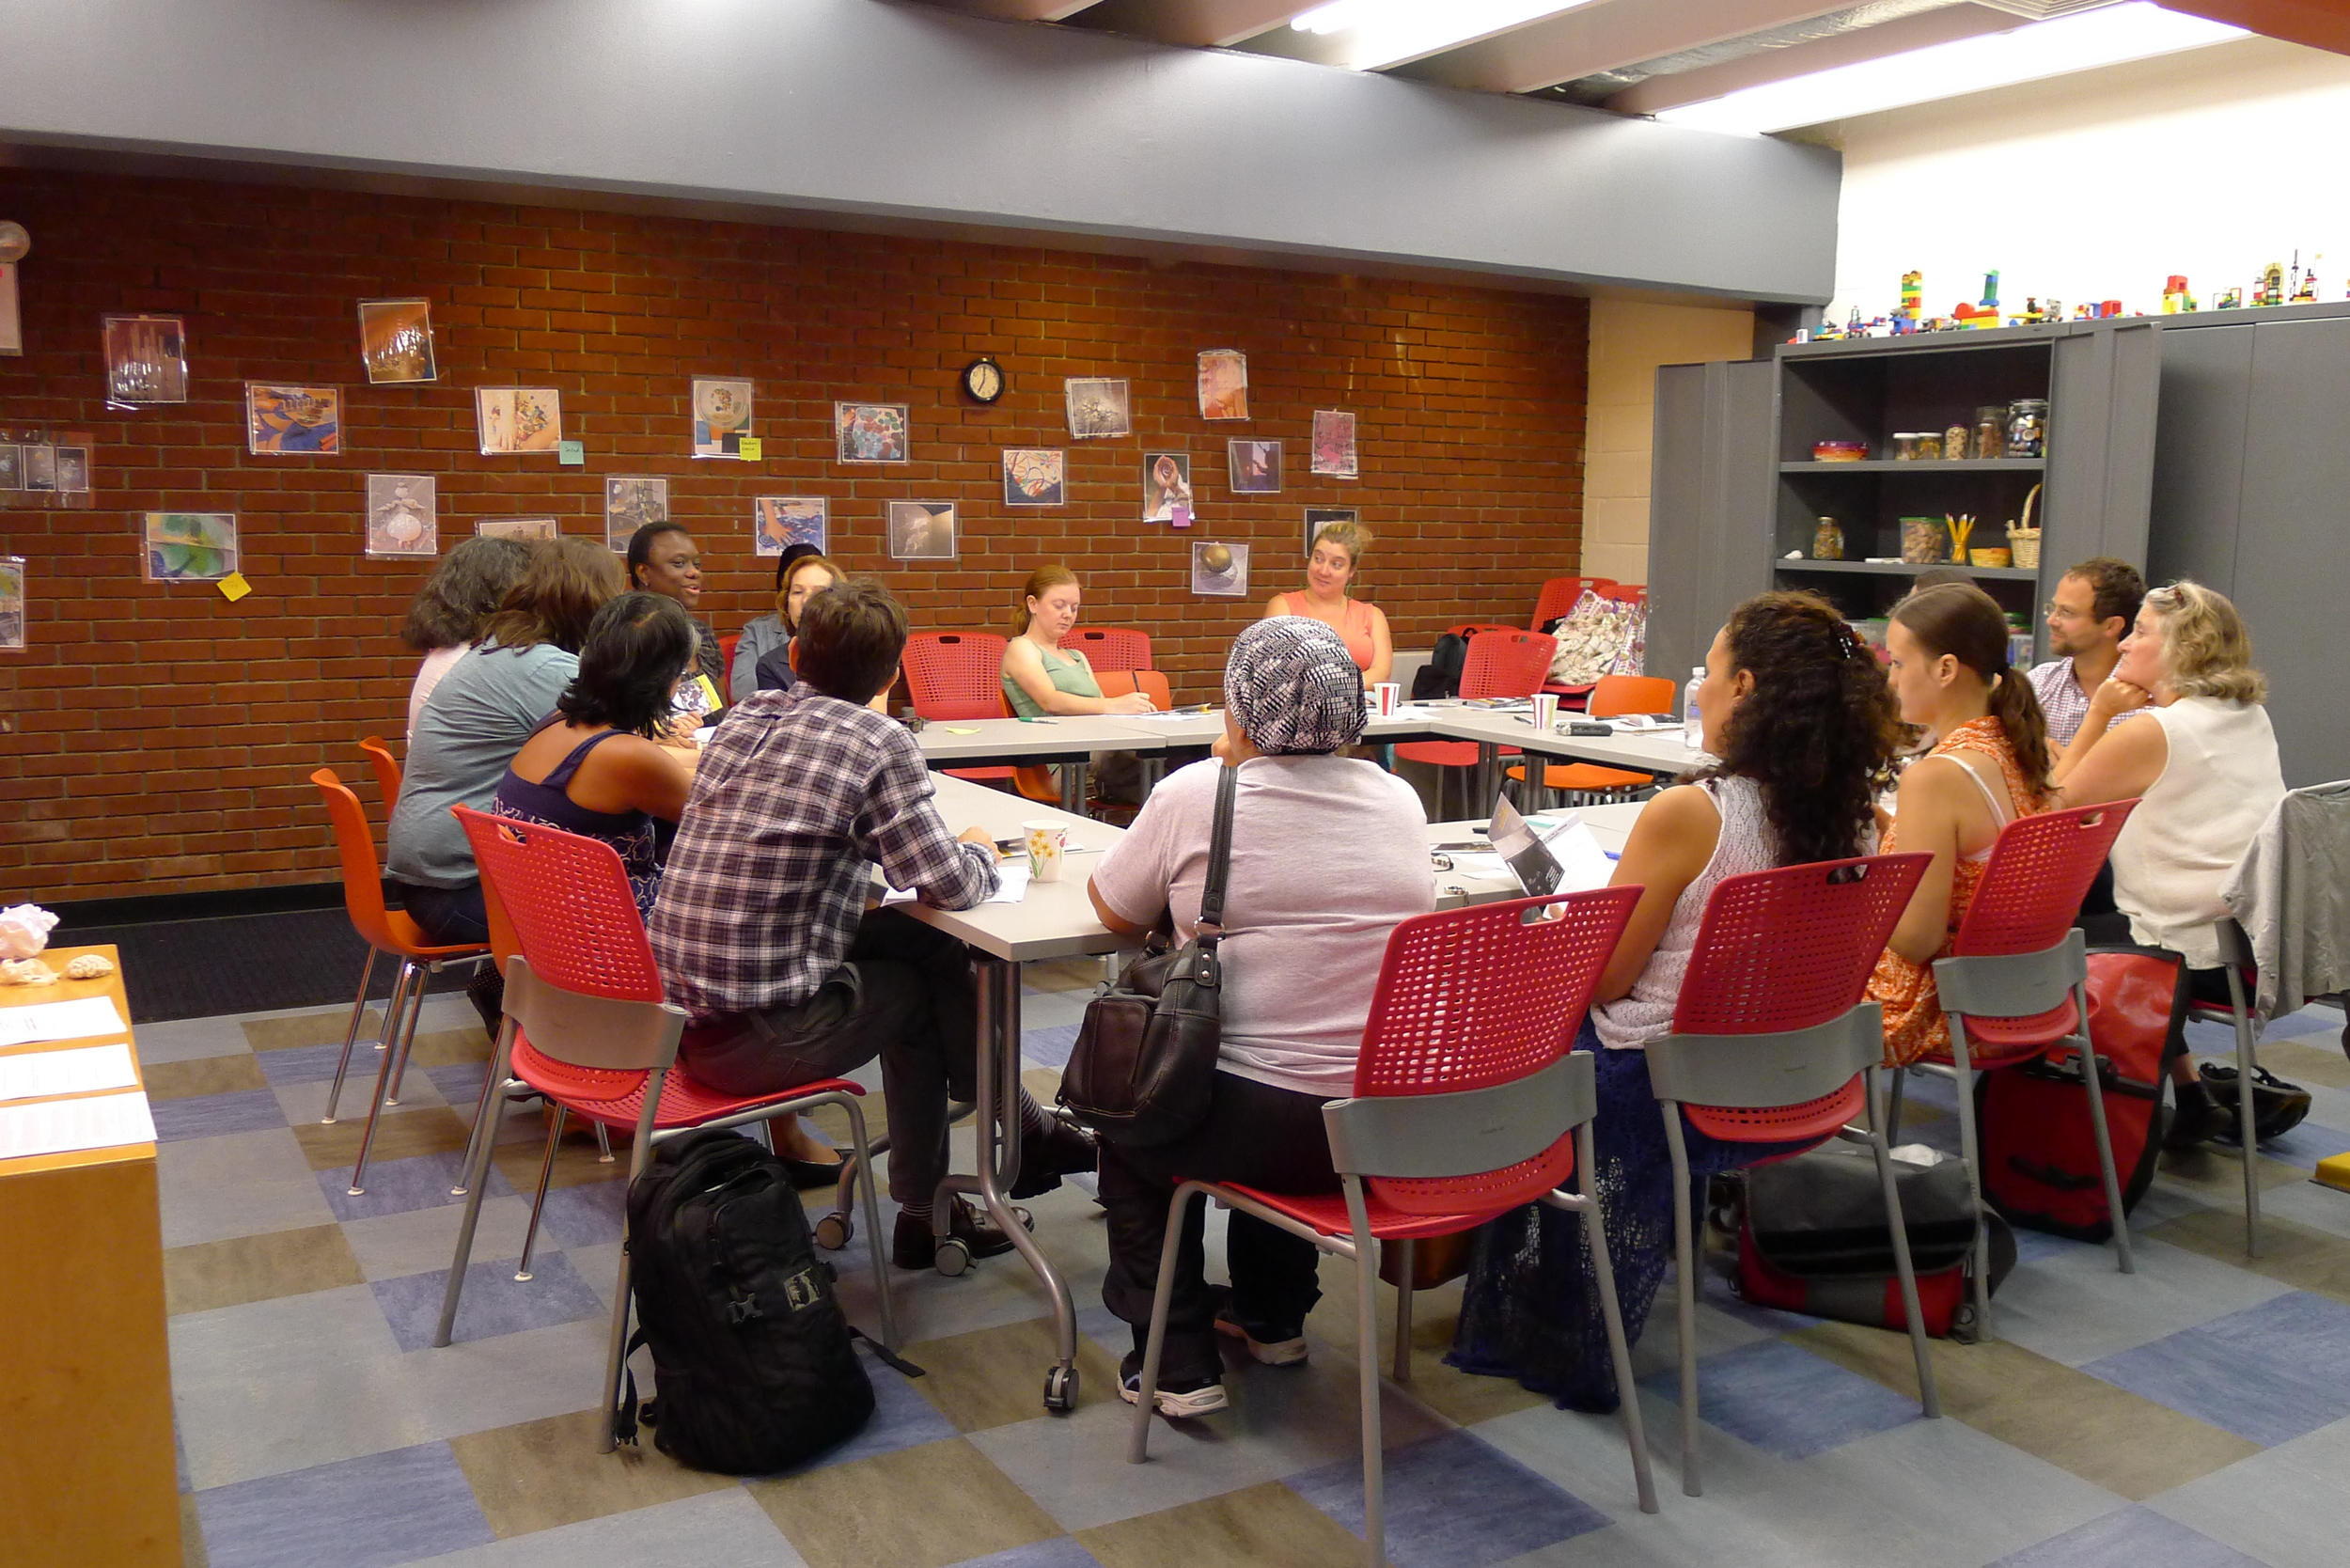 Sept 10 education round table at our Find & Seek venue, the back classroom of the Red Hook Public Library.